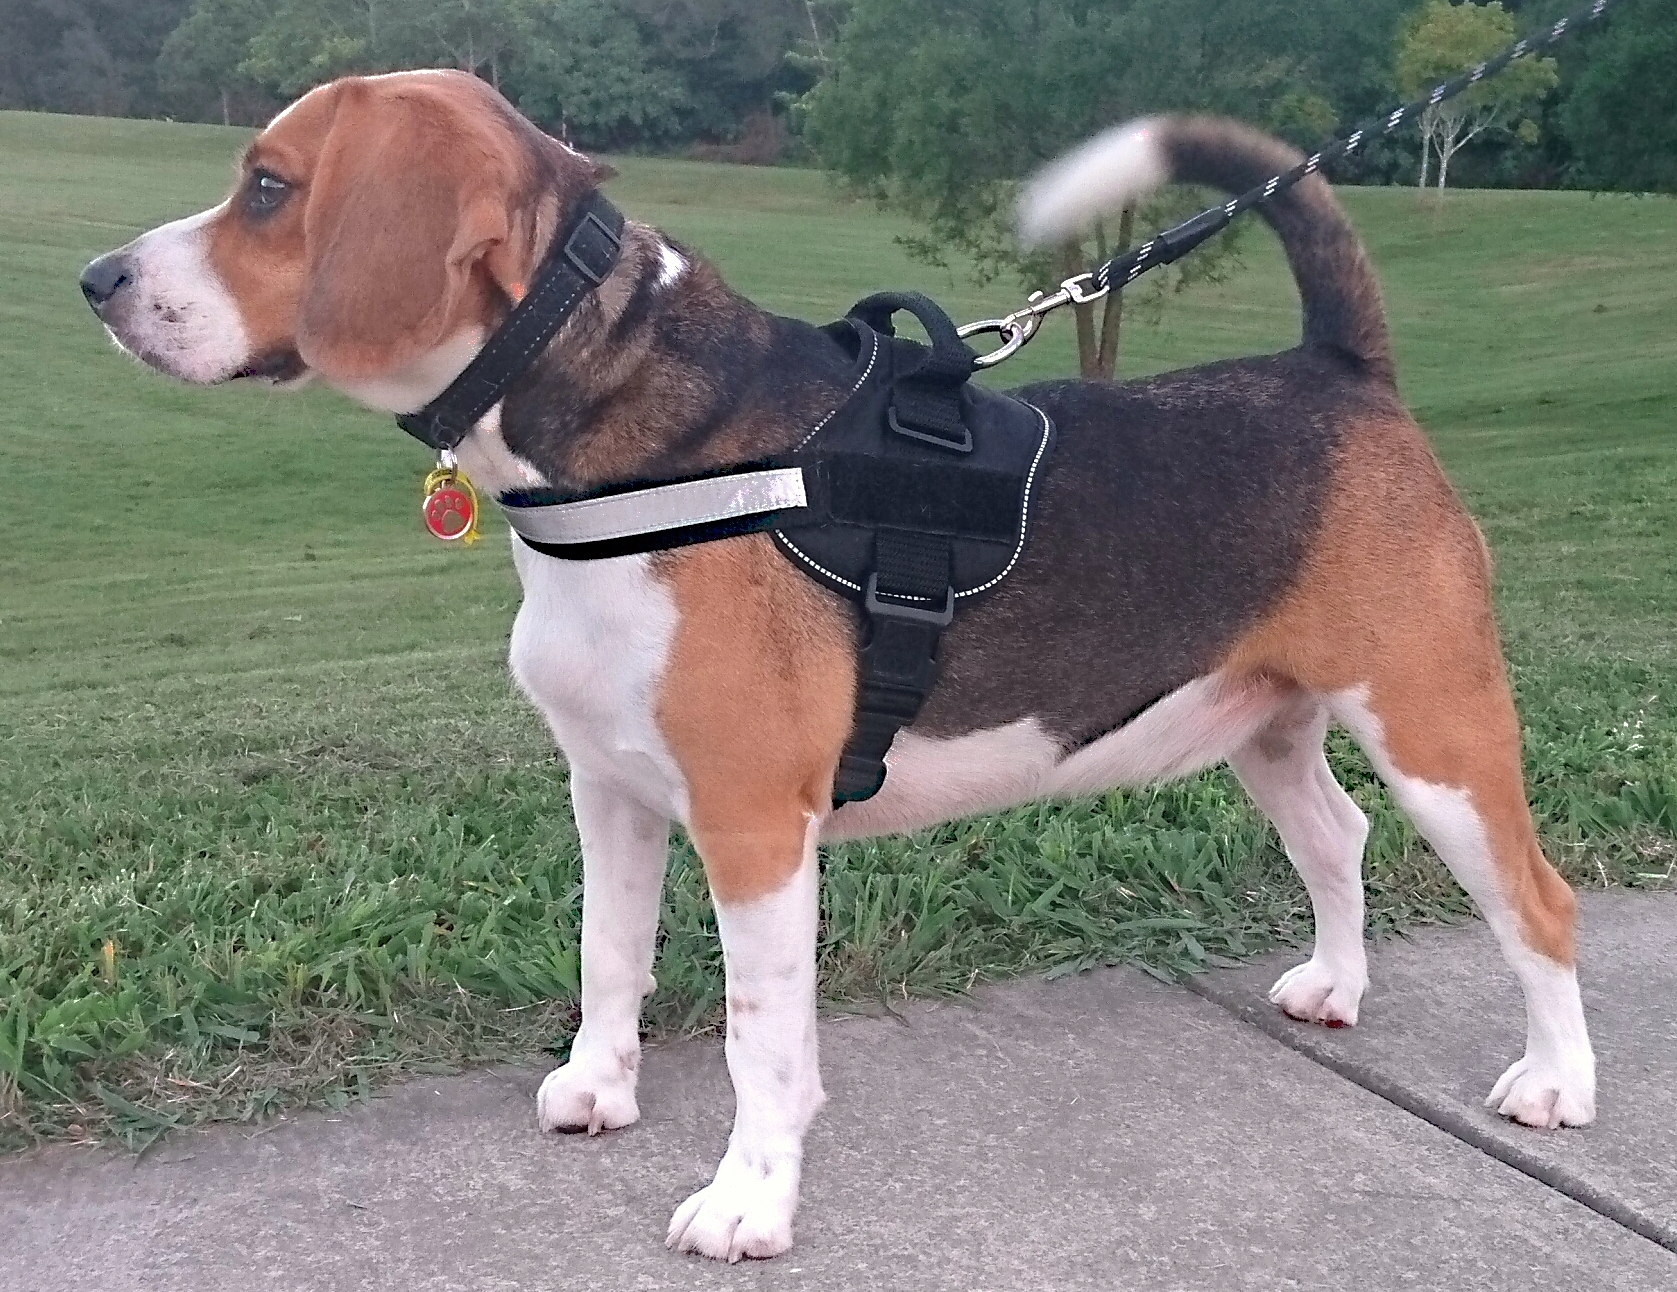 Dog Harness gallery image